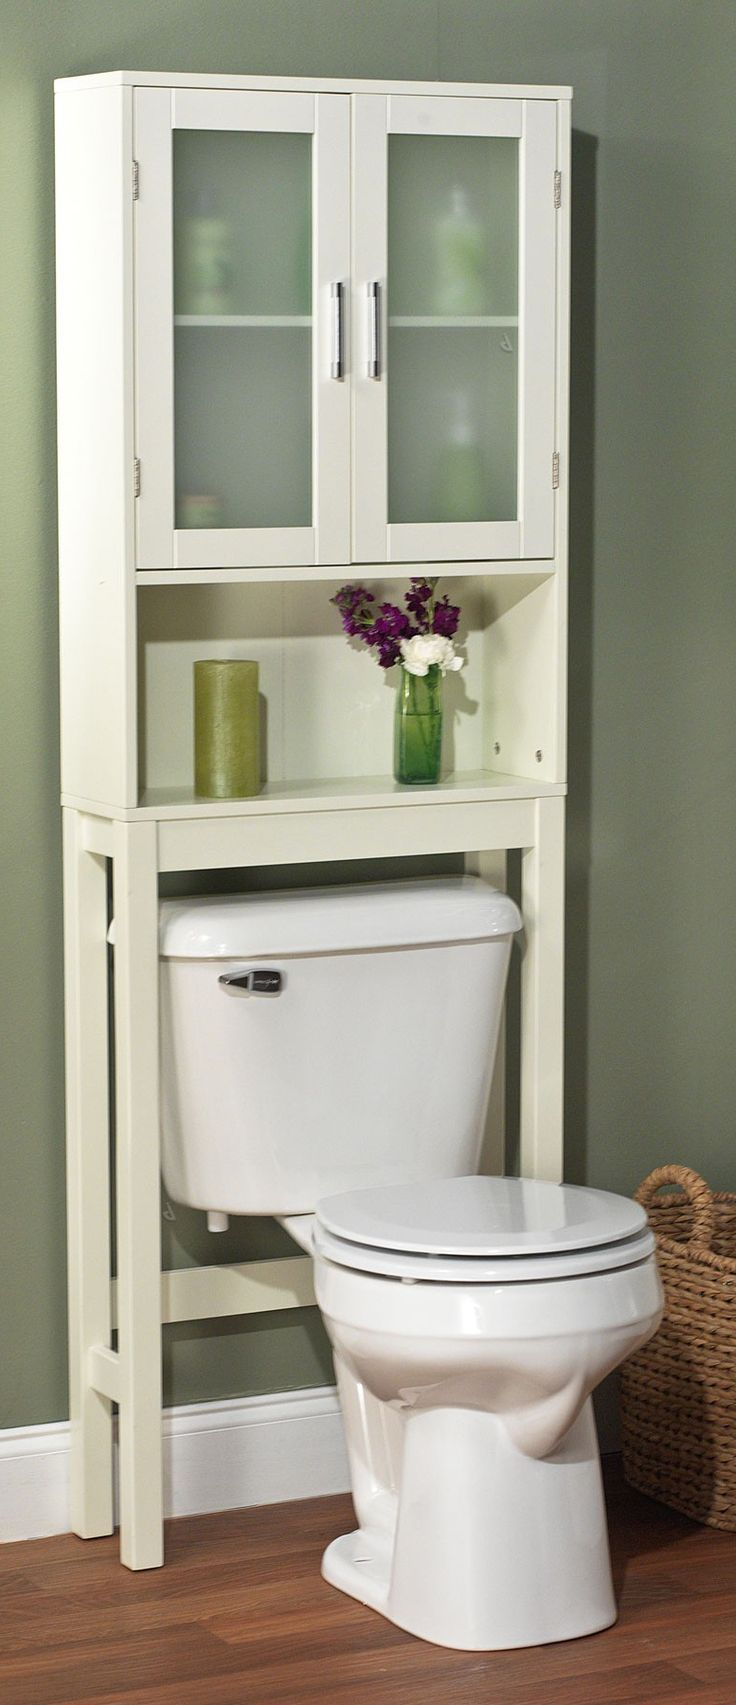 Bathroom space saver over toilet cupboard such a good for Bathroom decor and storage